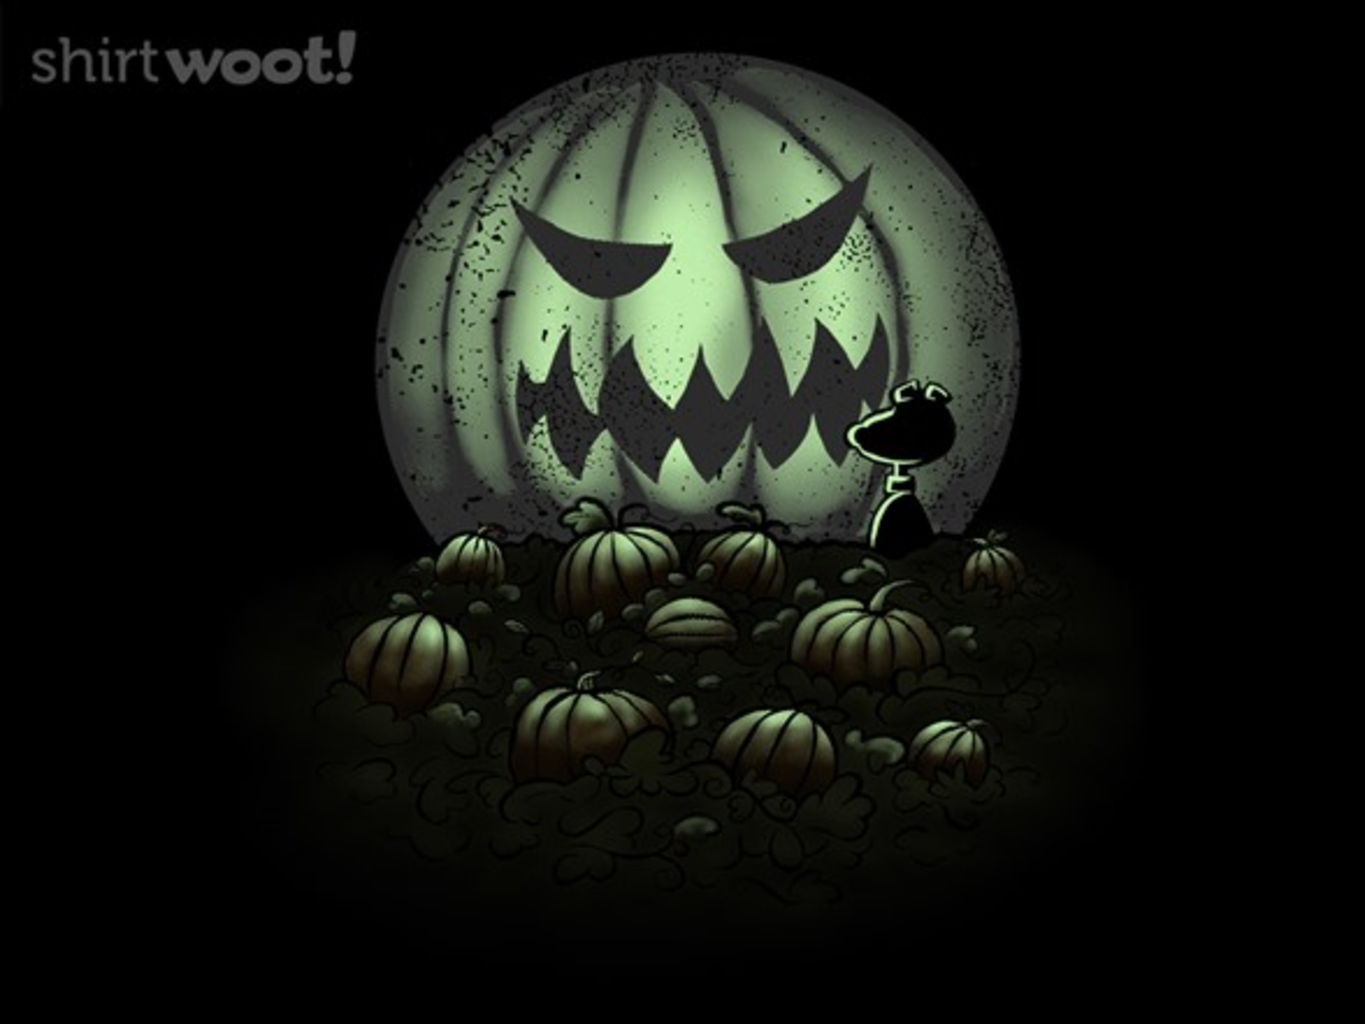 Woot!: A Most Sincere Pumpkin Patch - Glow - $13.00 + $5 standard shipping